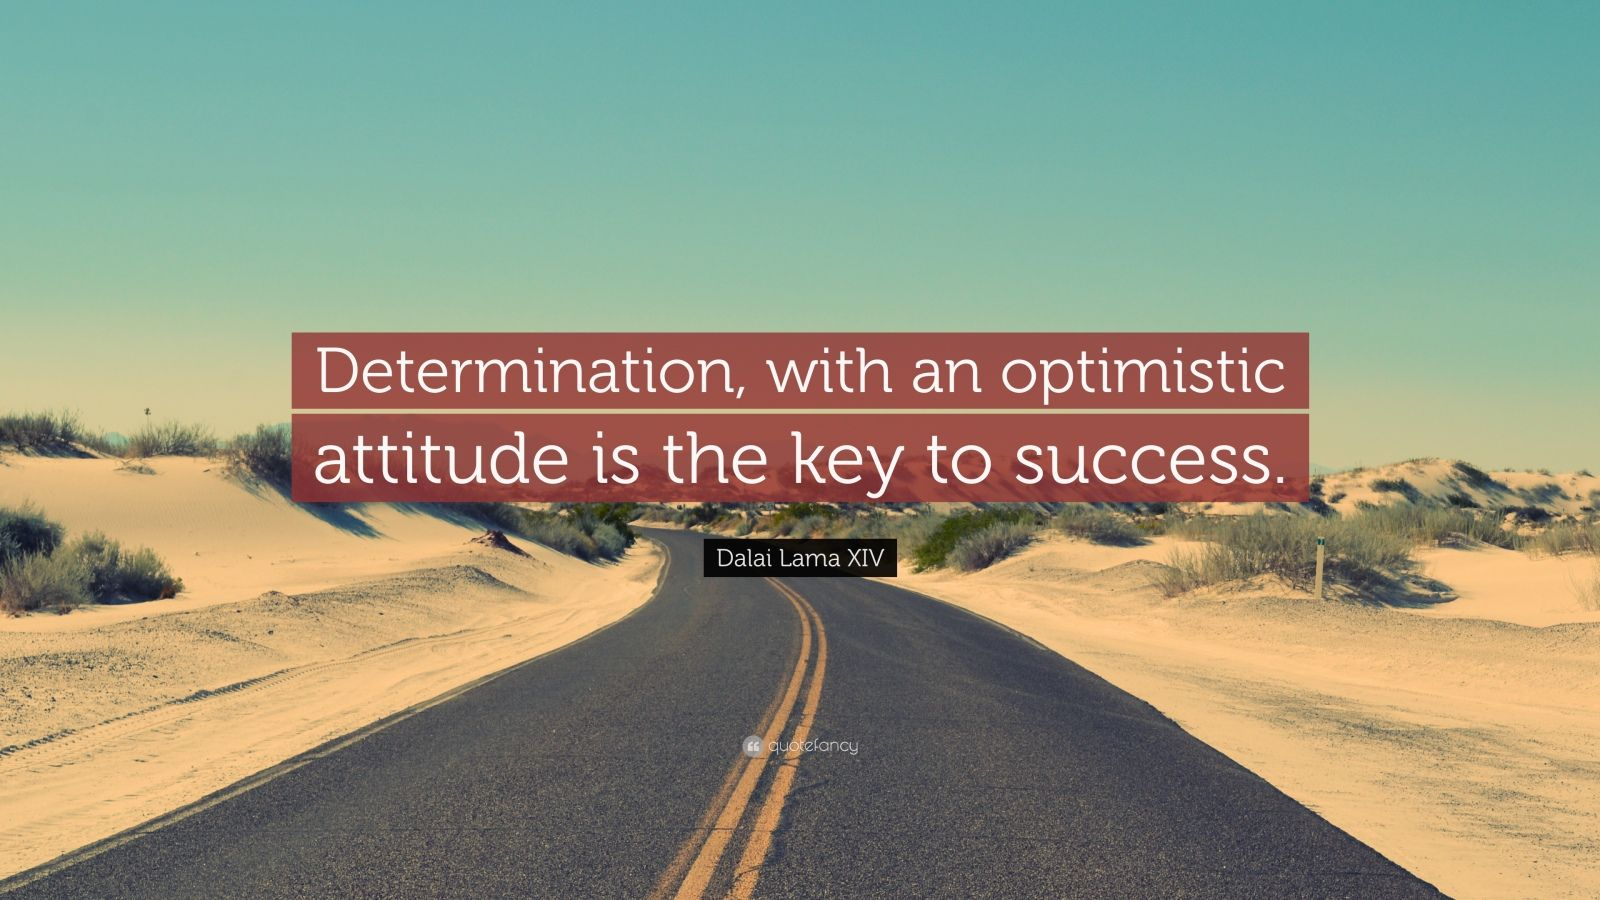 """Dalai Lama XIV Quote: """"Determination, with an optimistic attitude is the key to success."""""""